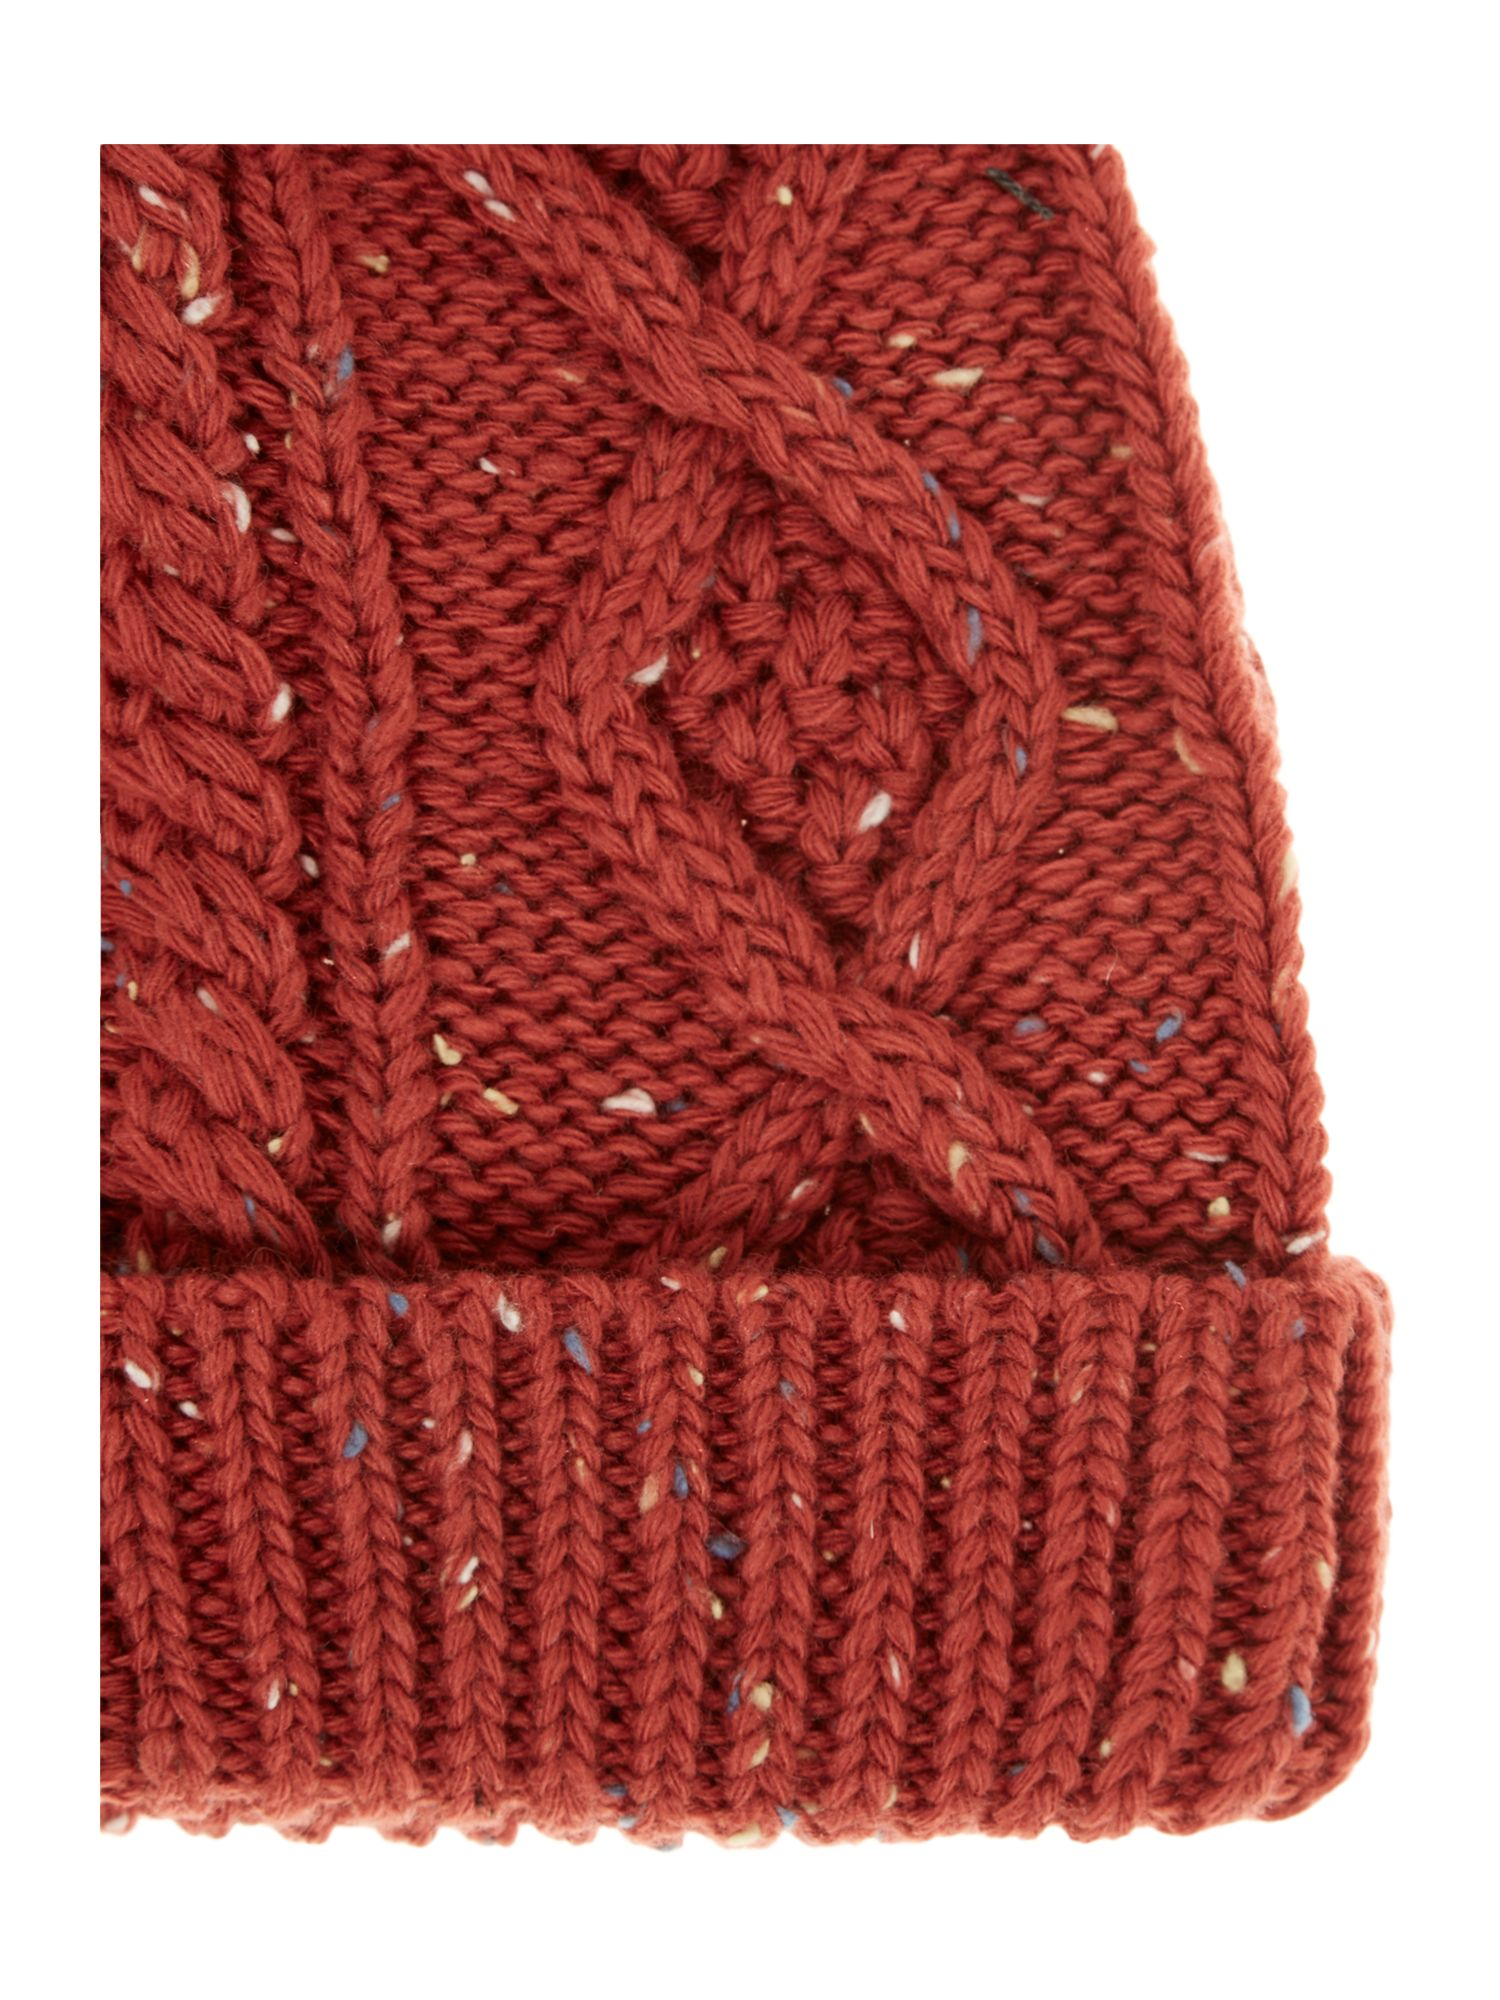 Nepp cable beanie hat with pom pom